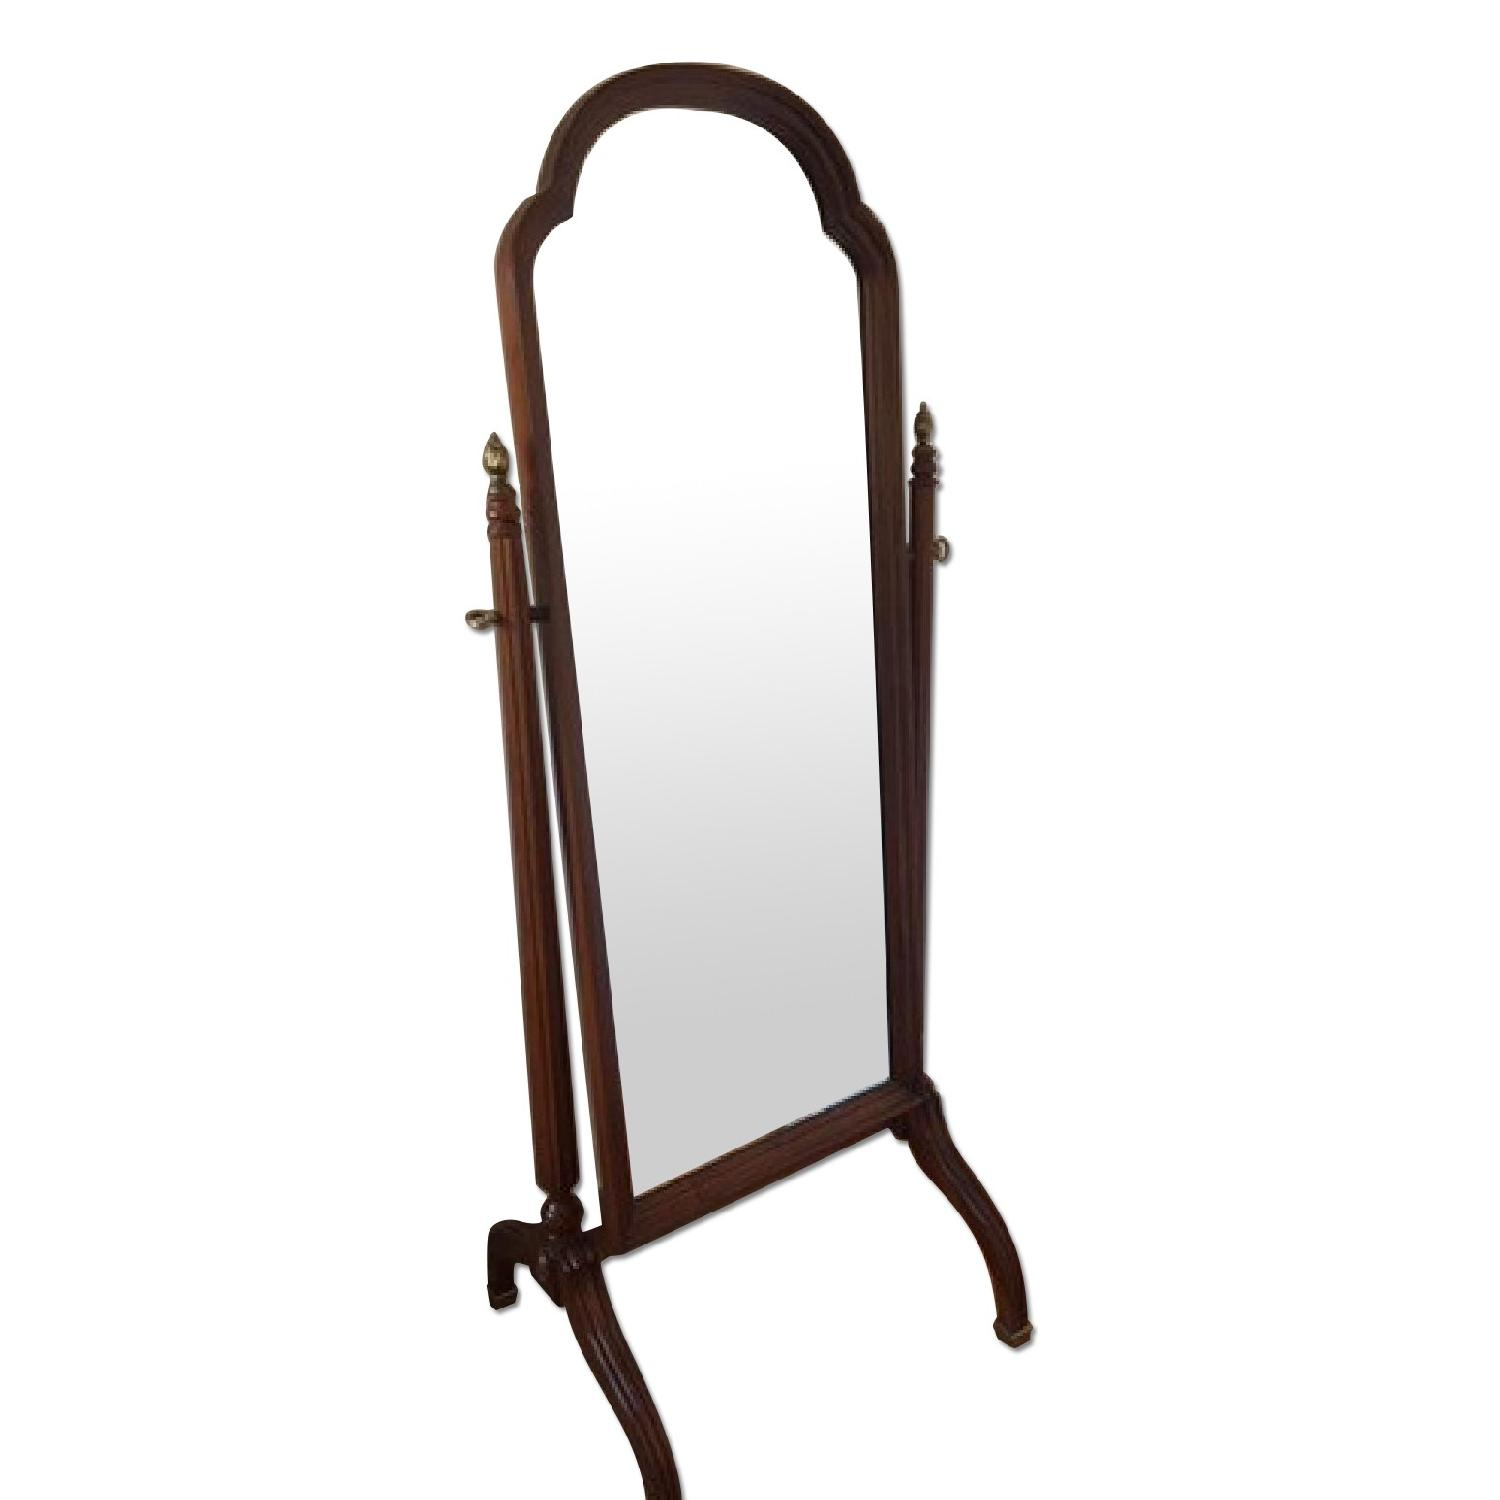 Cheval mirror cheval mirror plans iona tall cheval for Cheval mirror